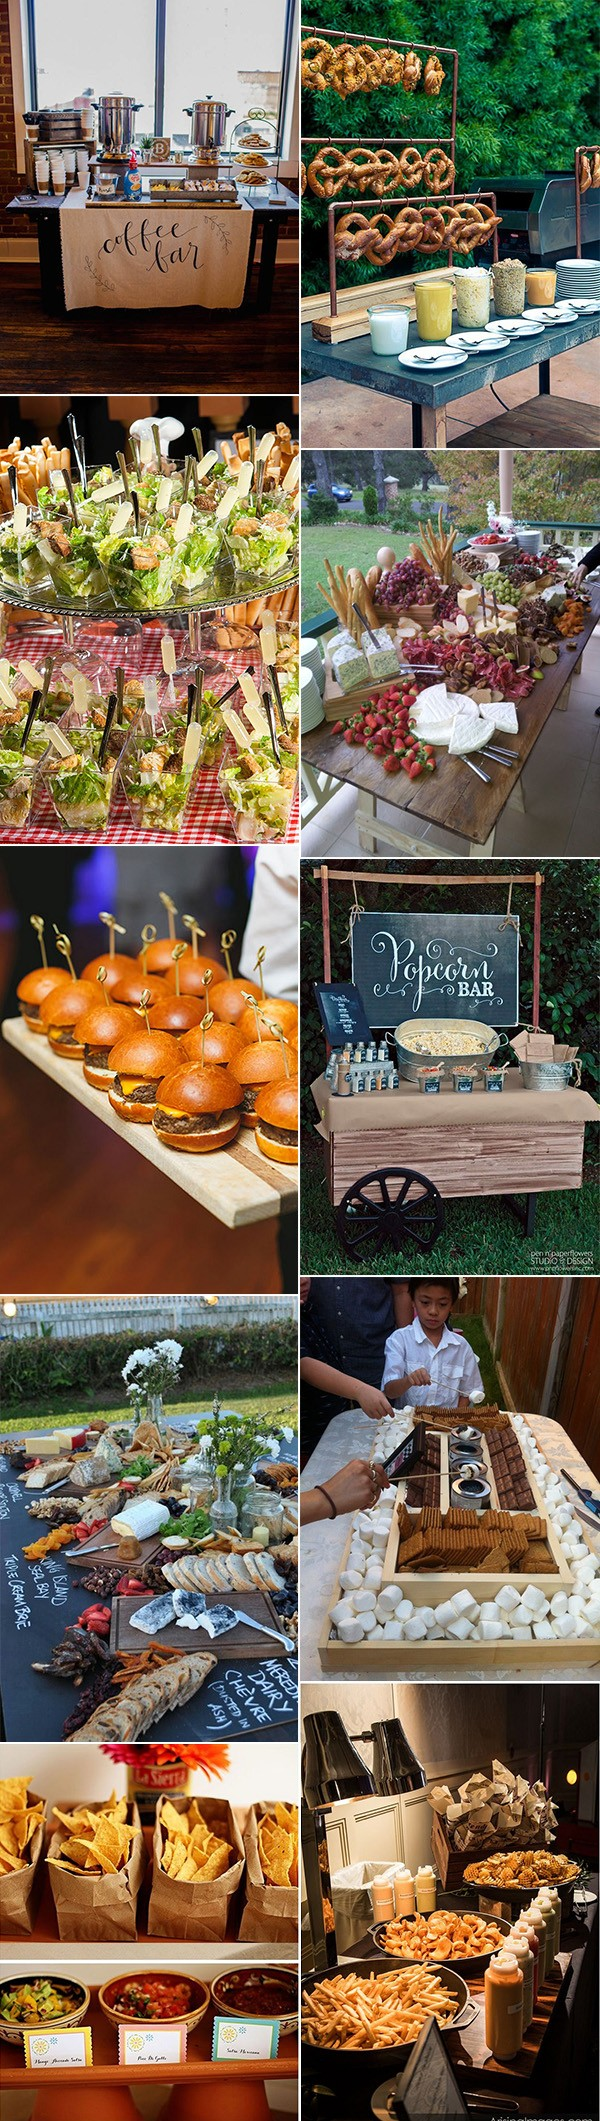 country rustic great wedding food station buffet ideas